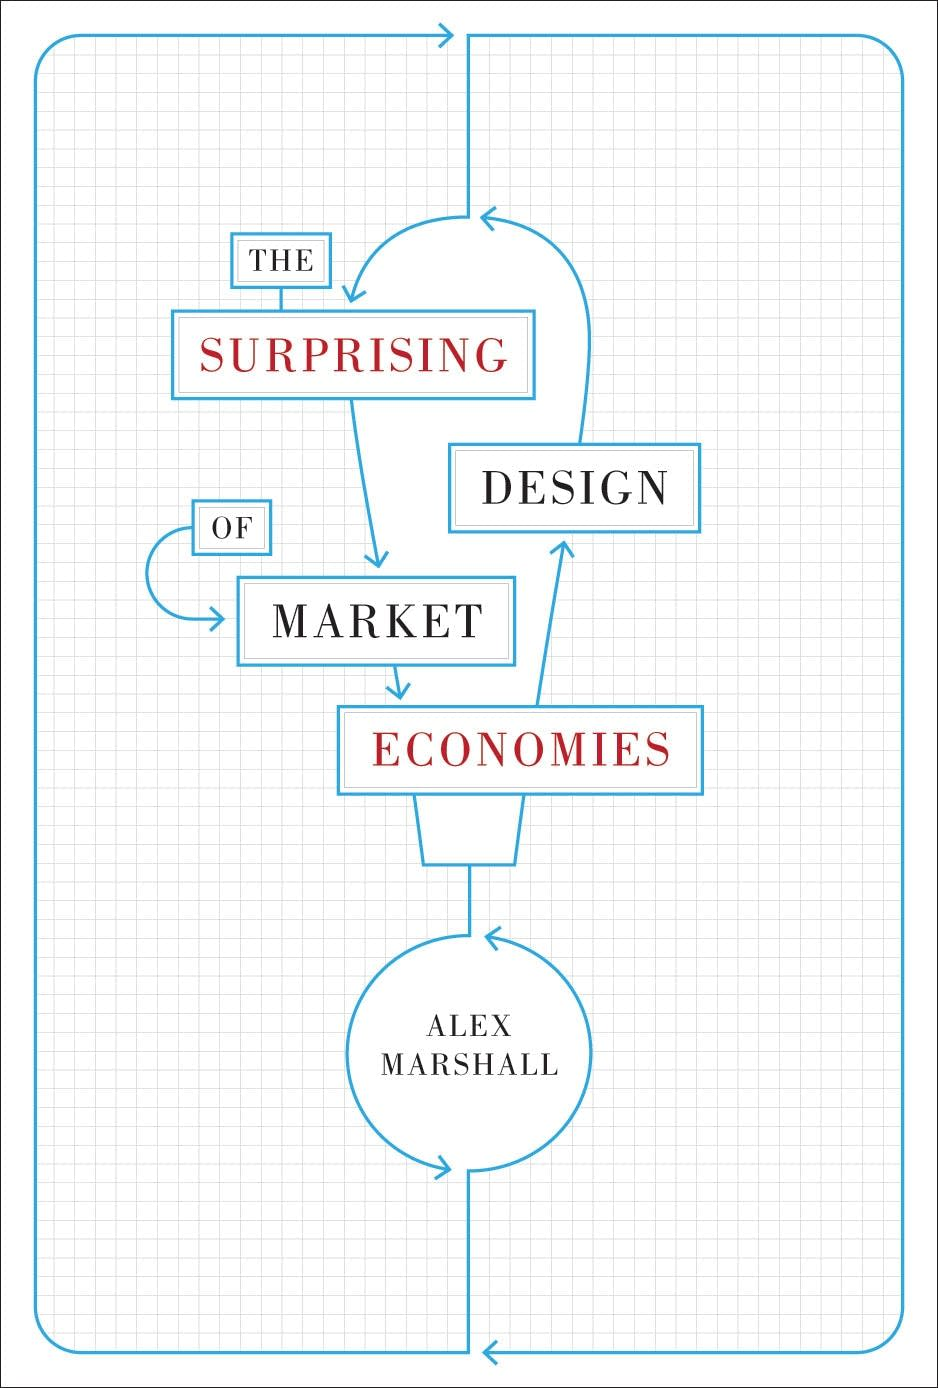 'The Surprising Design of Market Economies'